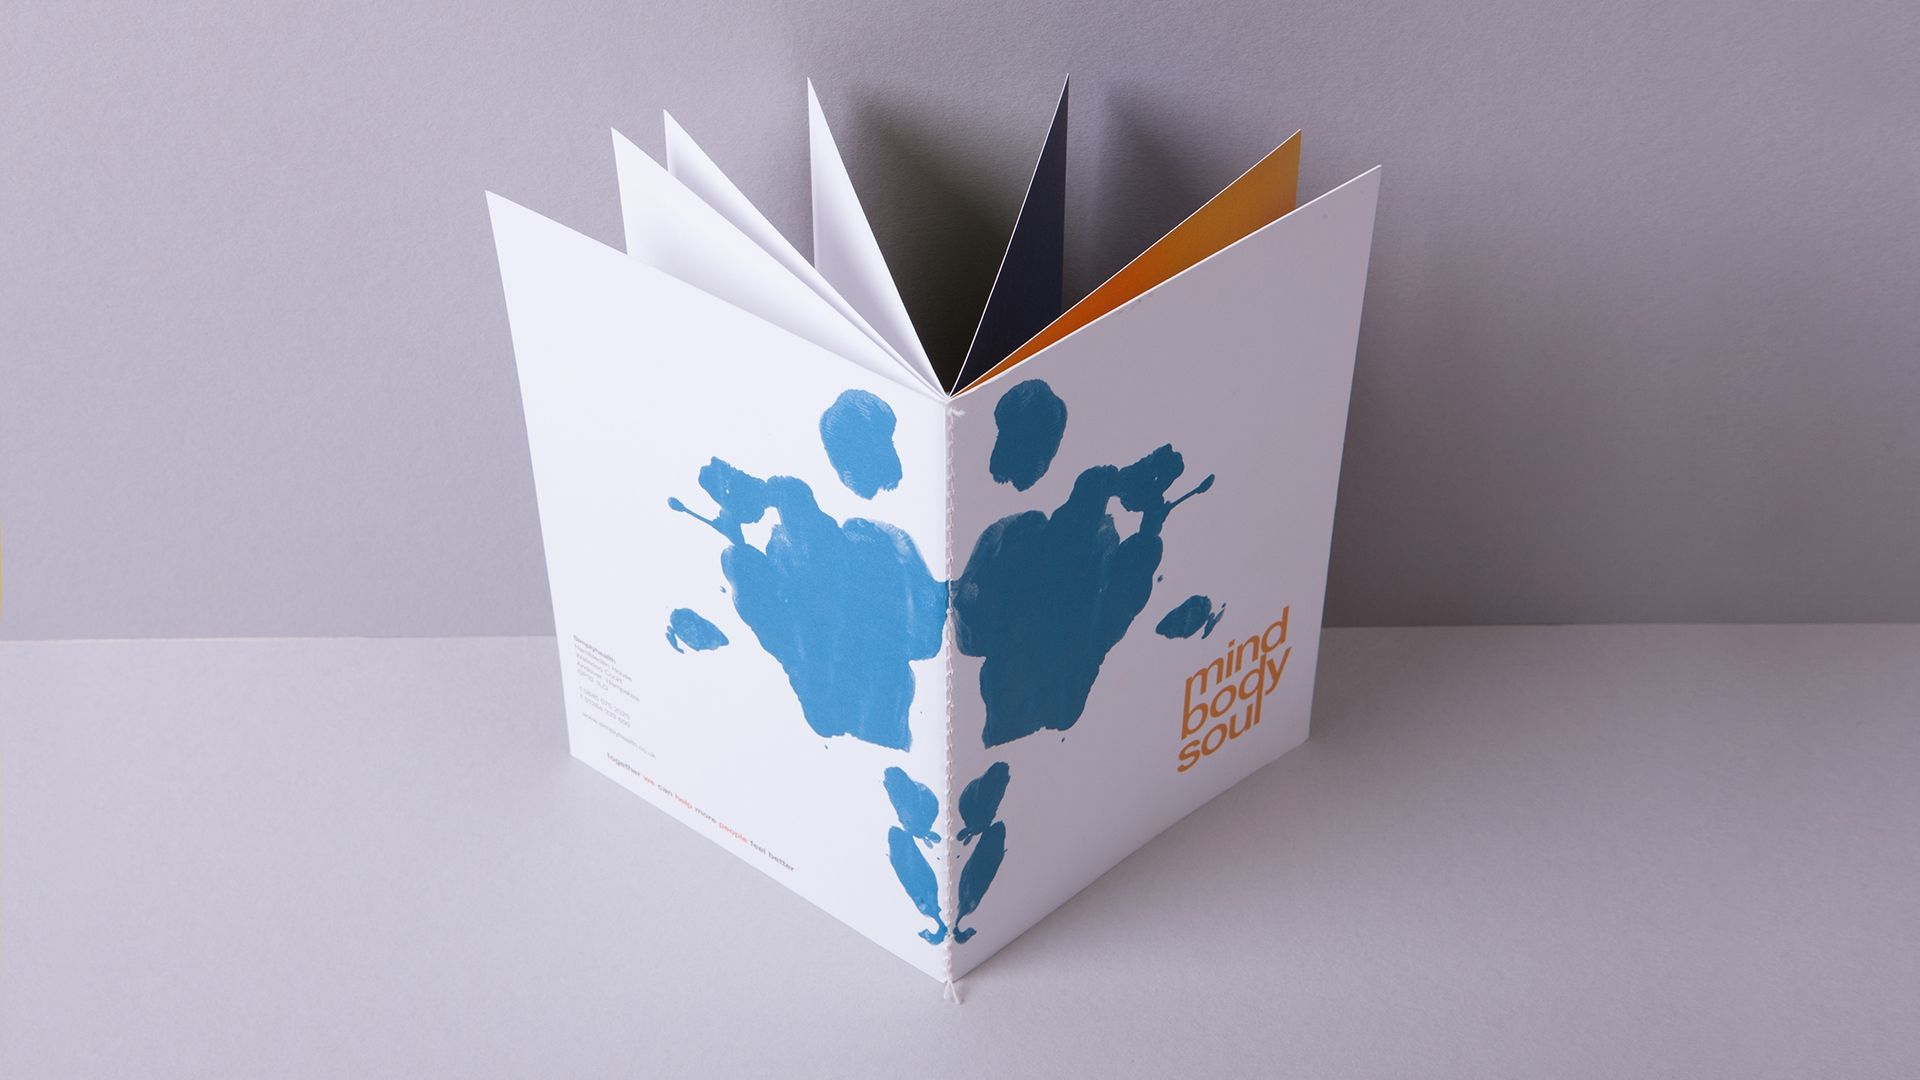 Simplyhealth Mind Body Soul Book Cover